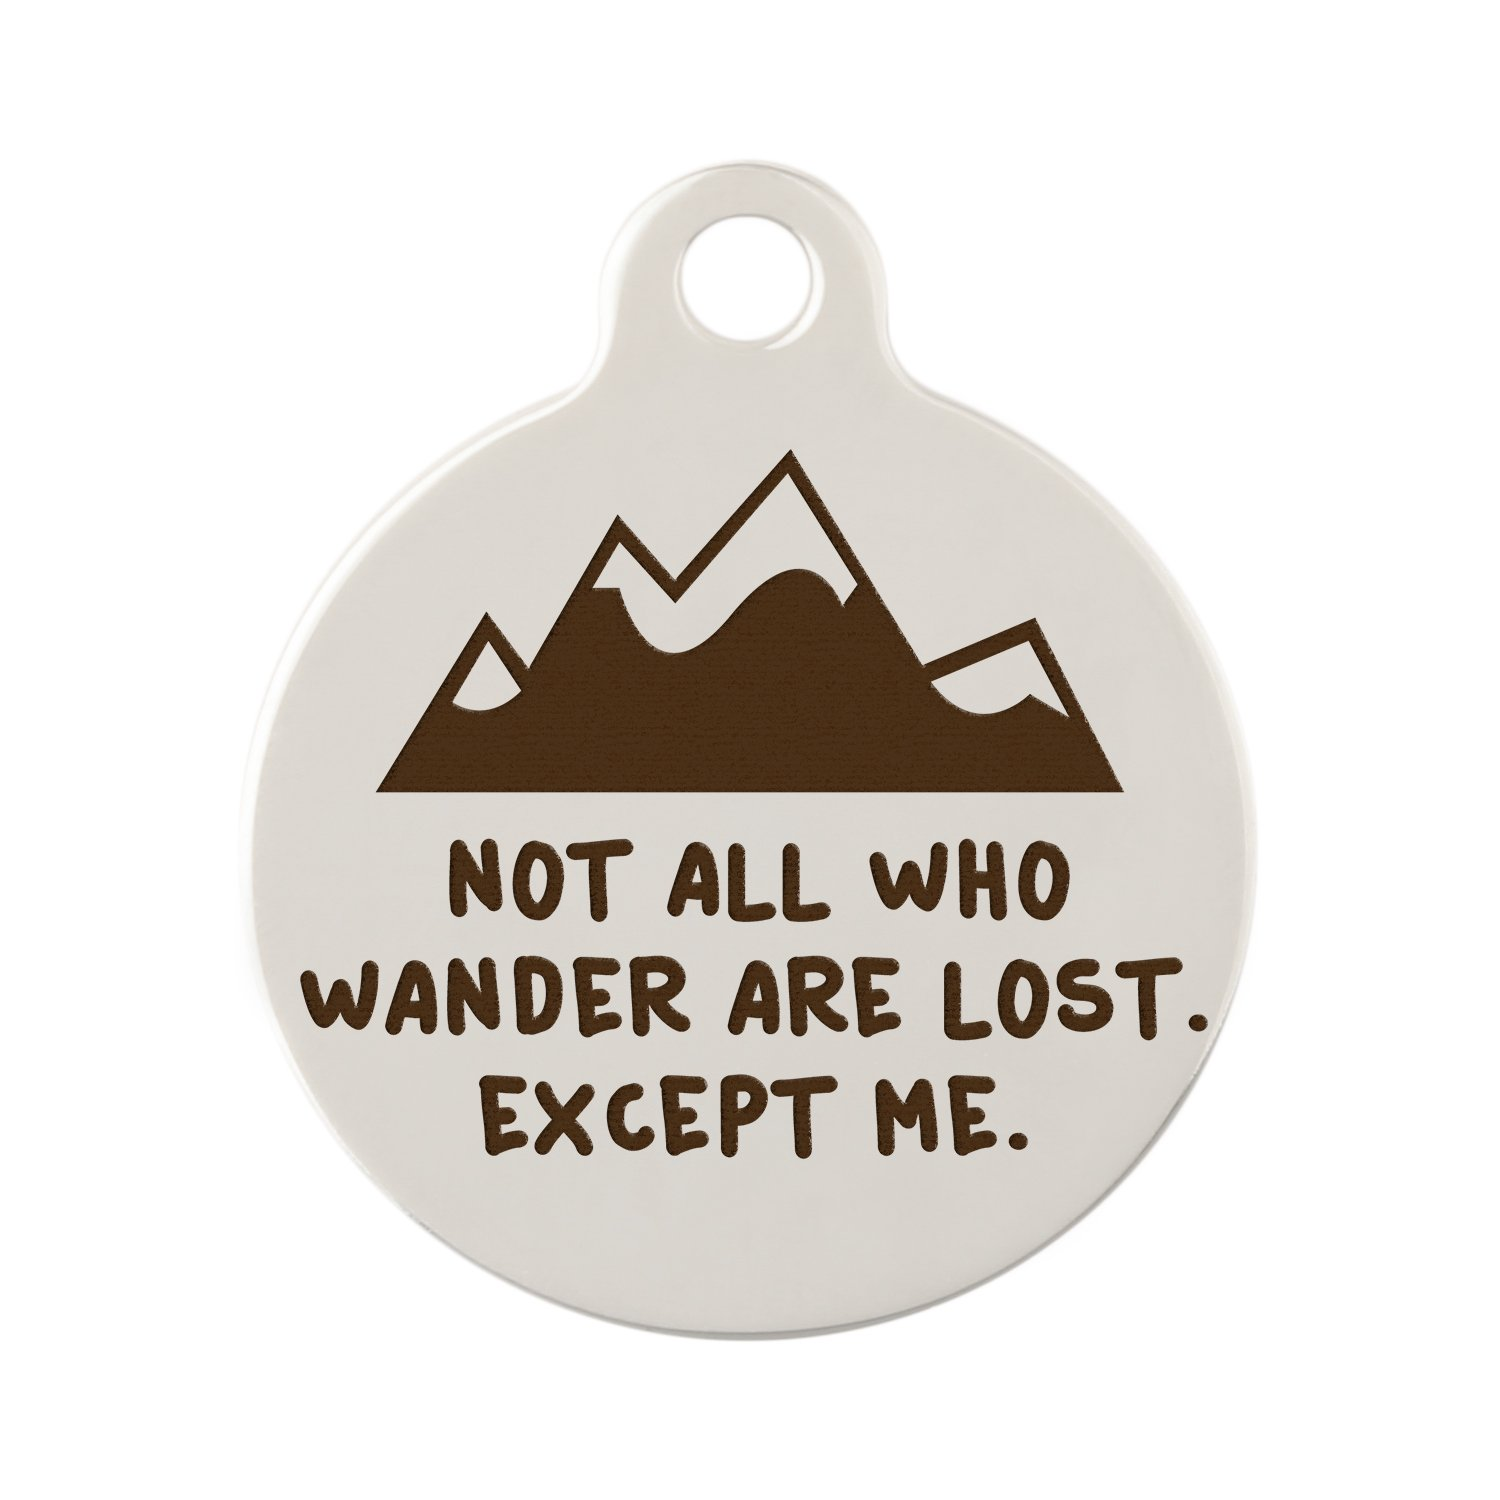 Custom Engraved Not All Who Wander Are Lost Dog Tag by dogIDs - Mountain Design - 1.25 Diameter Nickel Tag